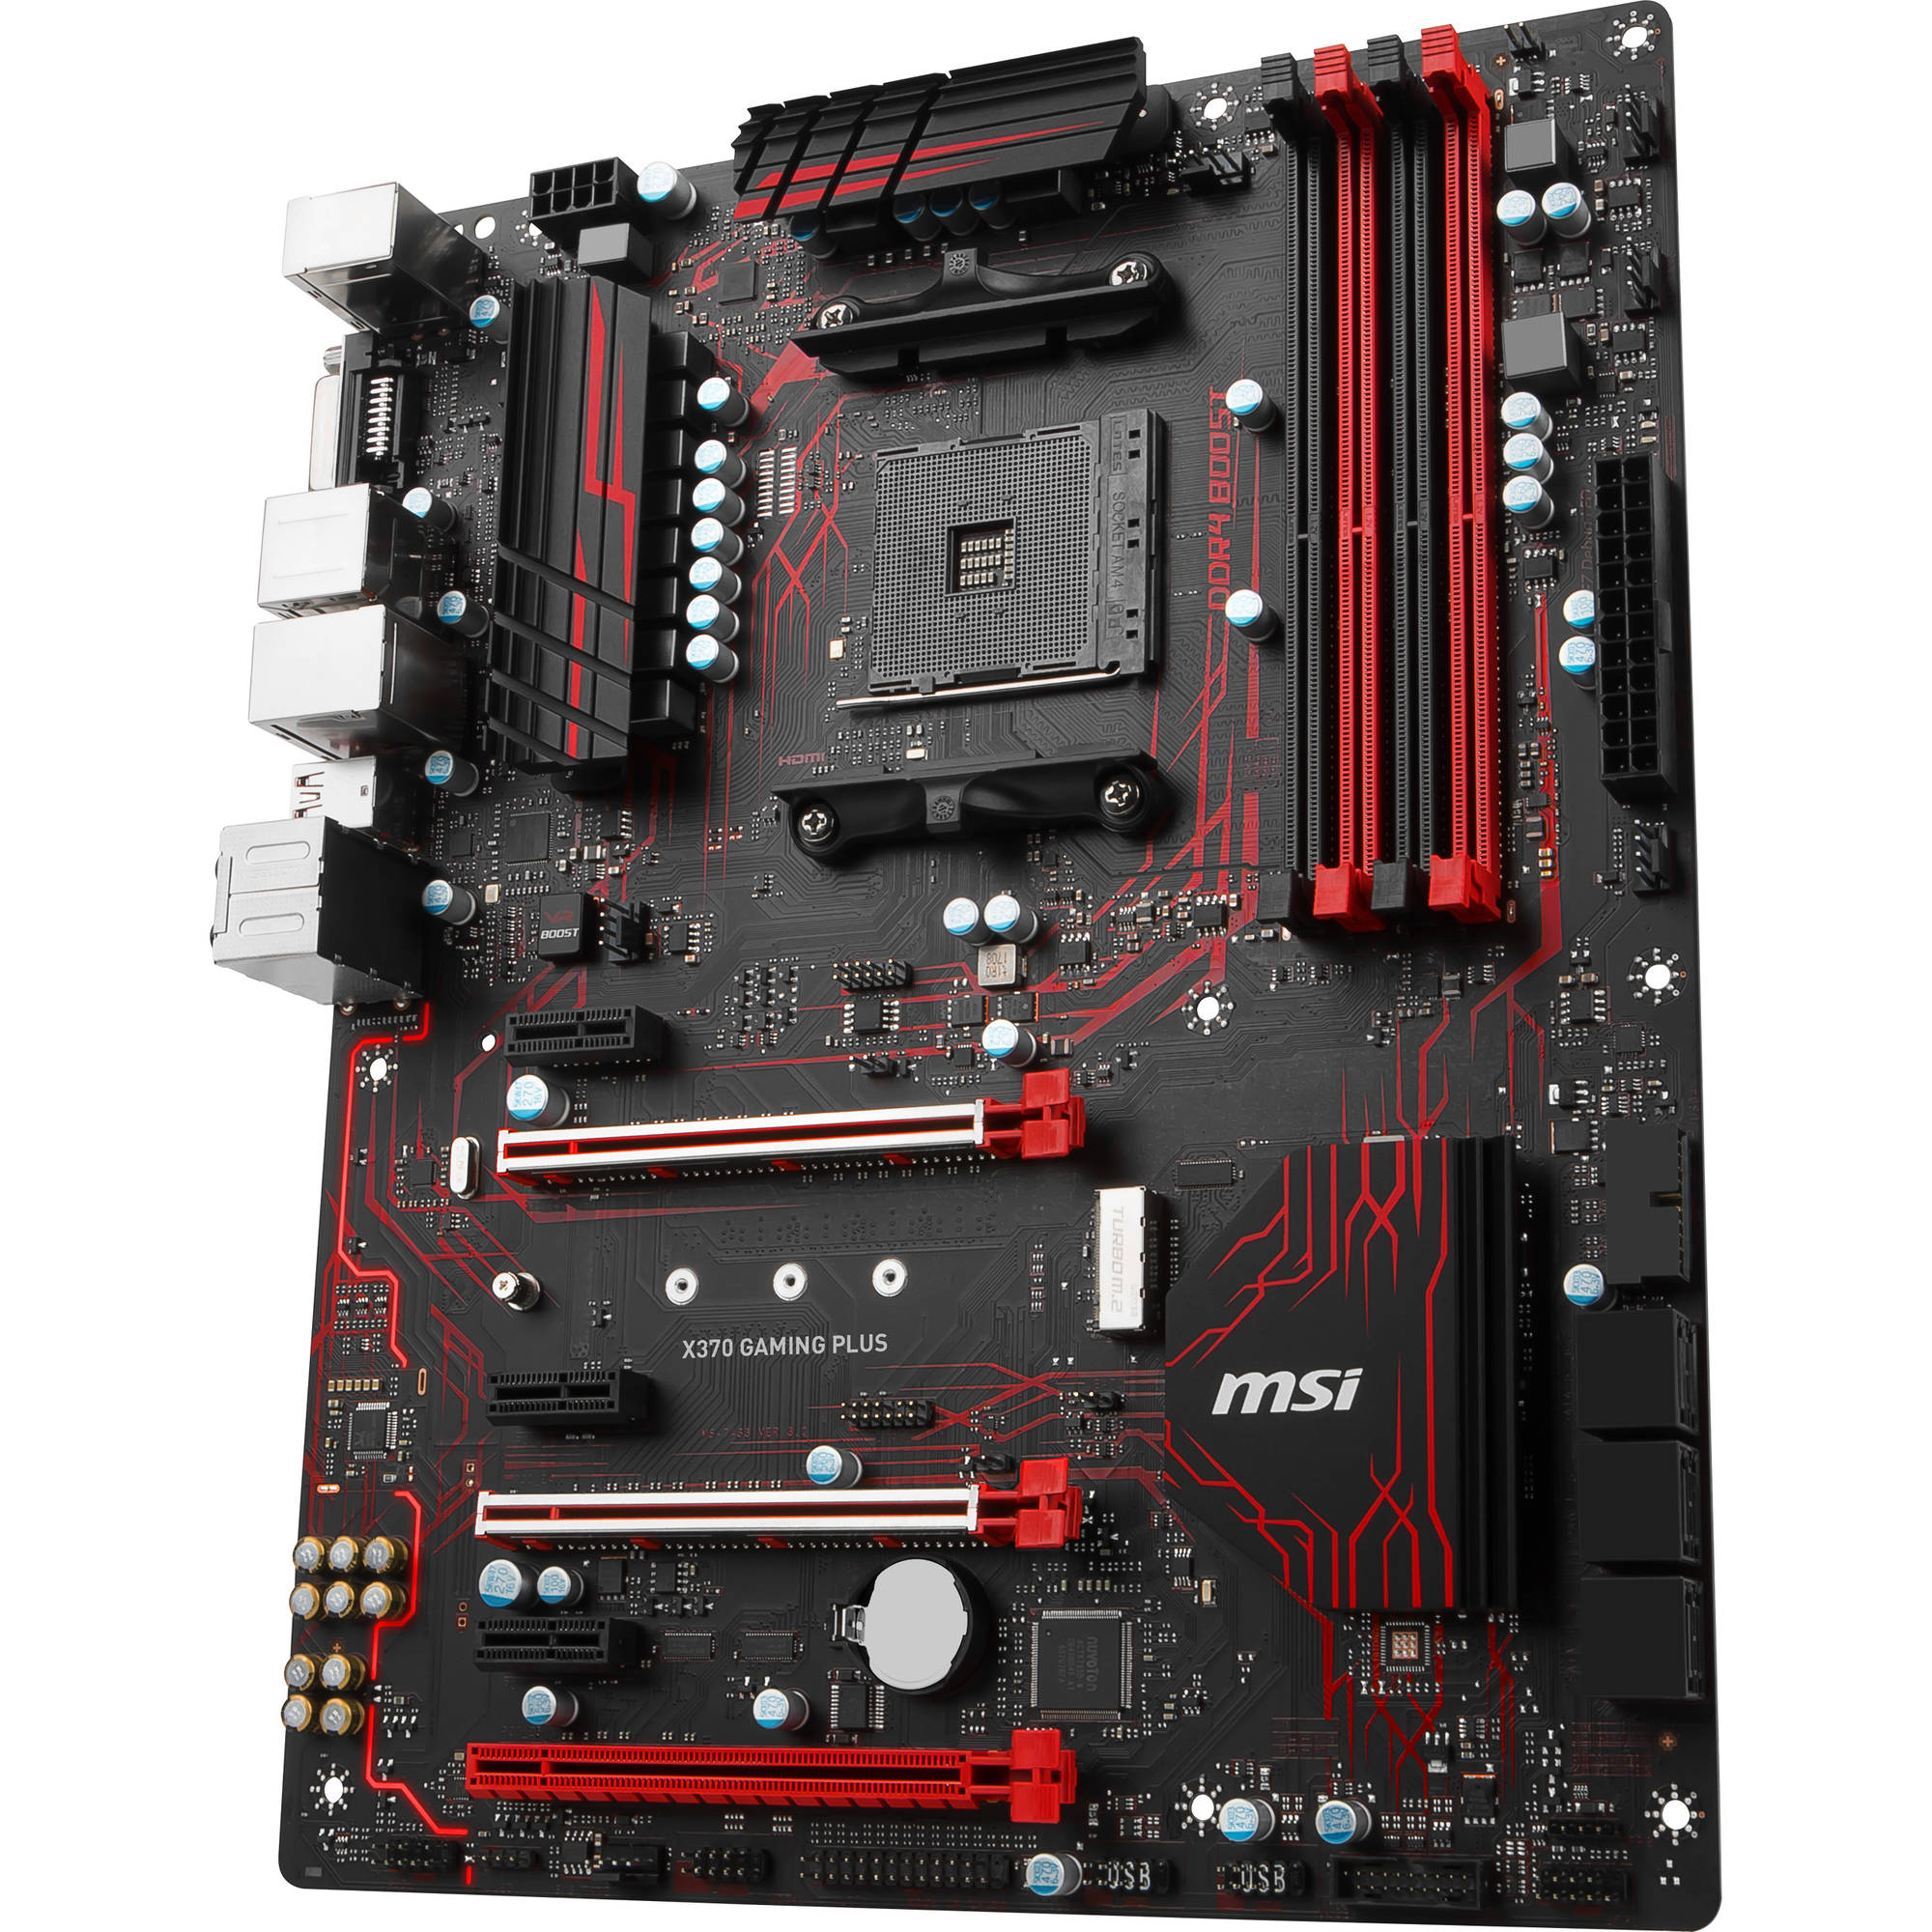 MSI X370 Gaming Plus AM4 ATX Motherboard